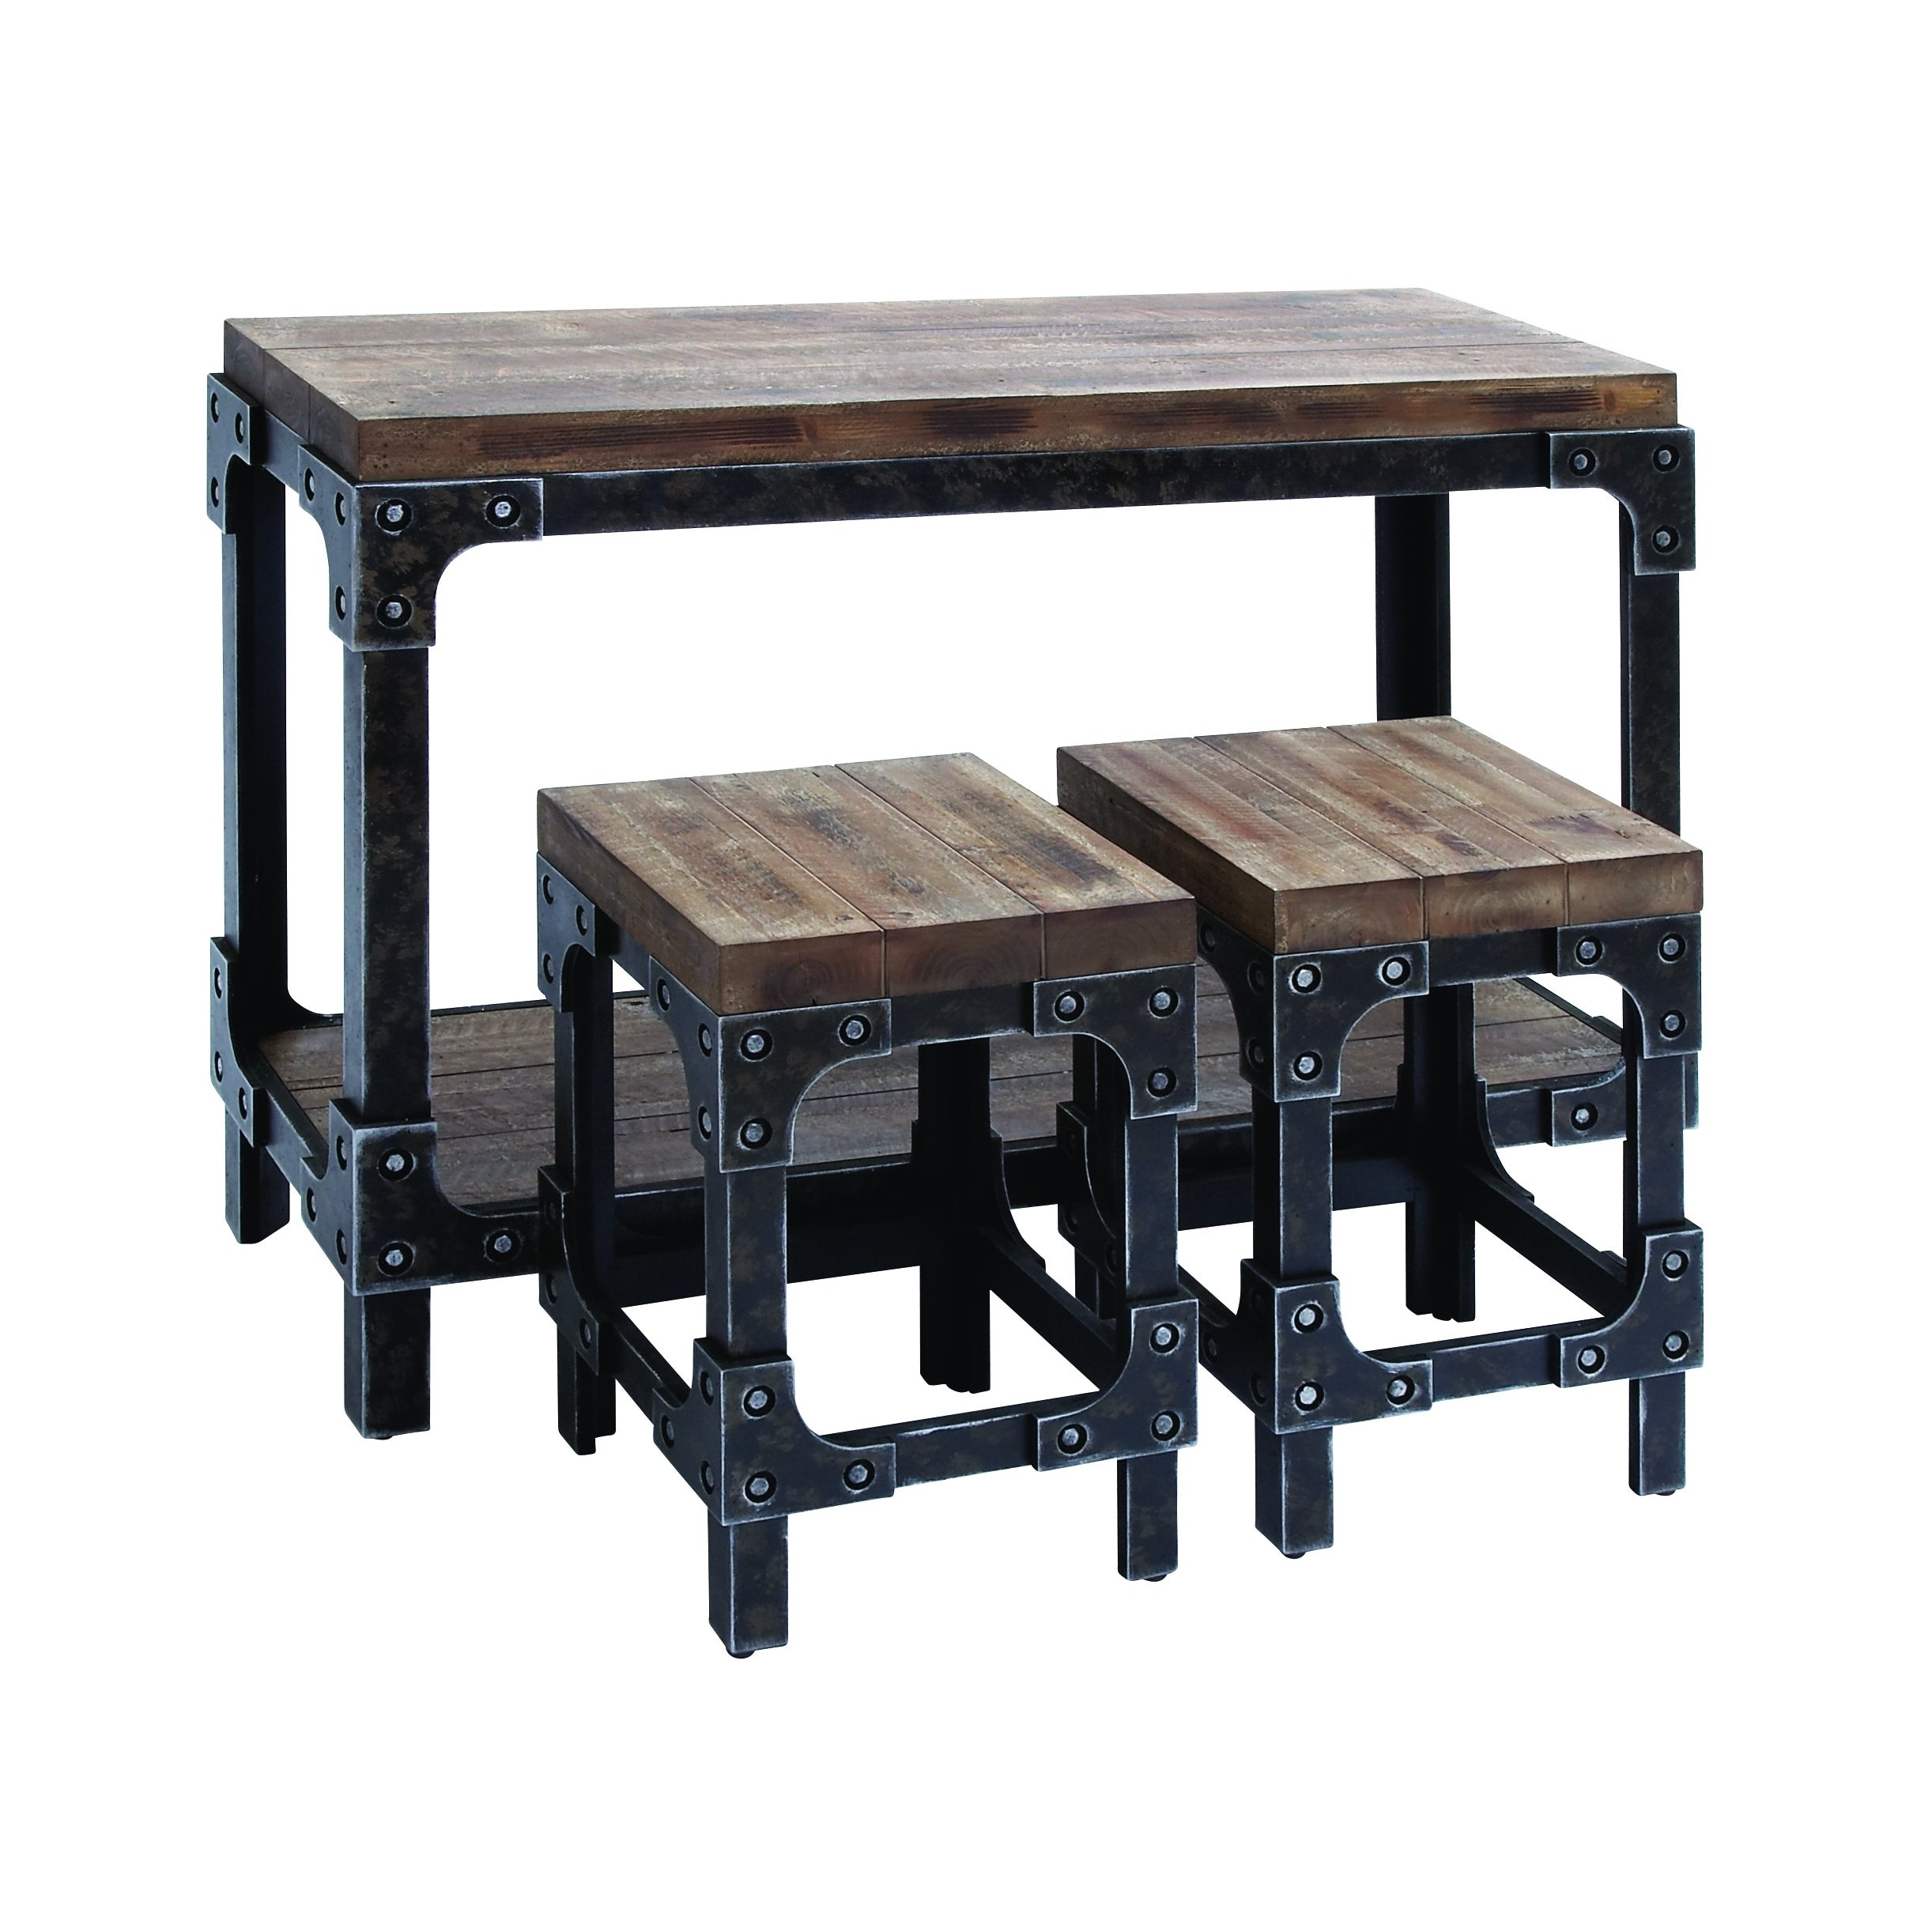 Walkover Black/Brown Wood/Metal Table and 2 Stools Set (S...